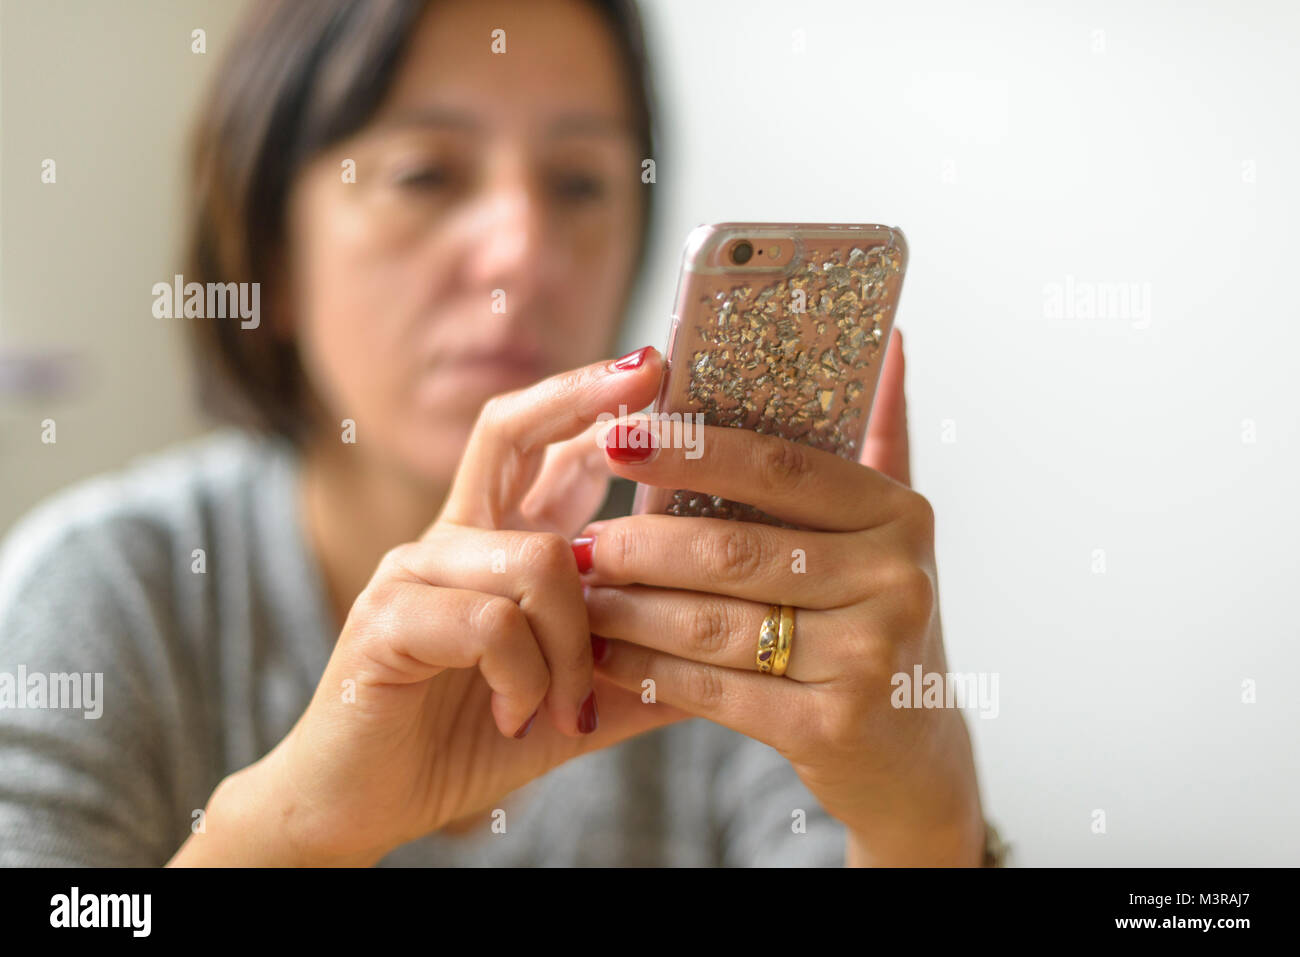 Woman on touch screen mobile phone - Stock Image